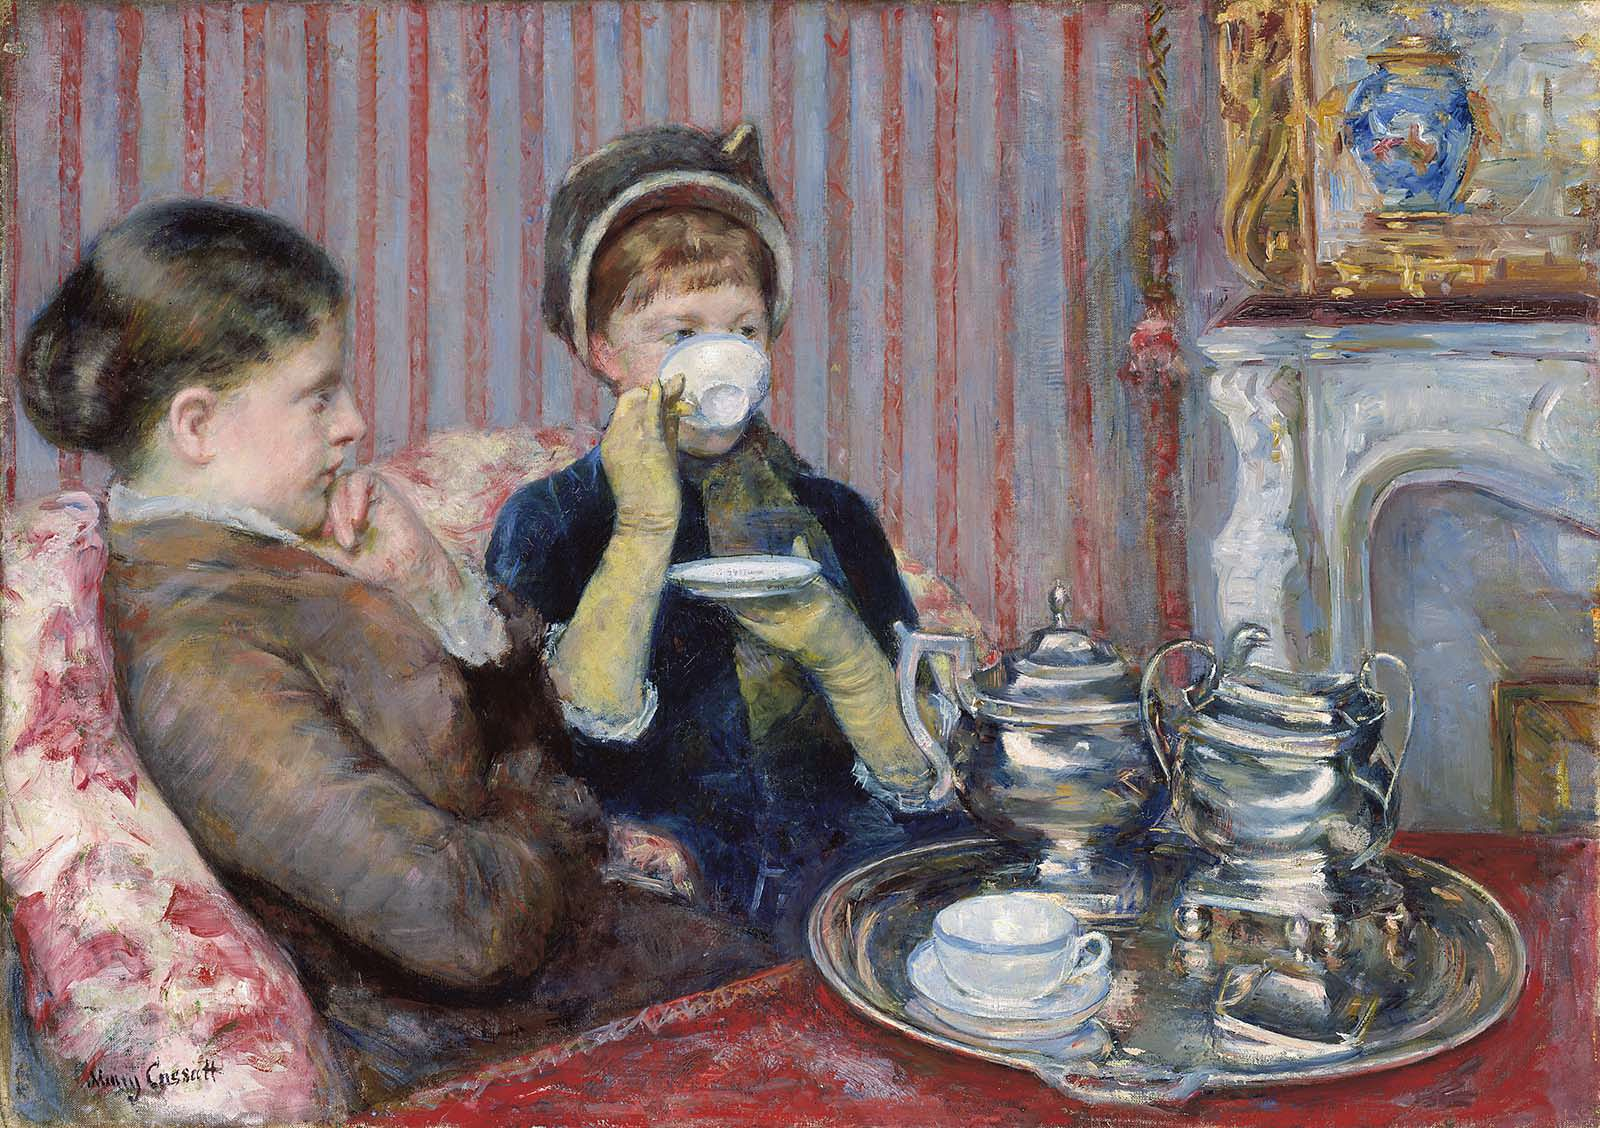 Mary Cassatt, Le thé [Der Tee], um 1880, Öl auf Leinwand, 64.77 x 92.07 cm (Museum of Fine Arts, Boston, M. Theresa B. Hopkins Fund)